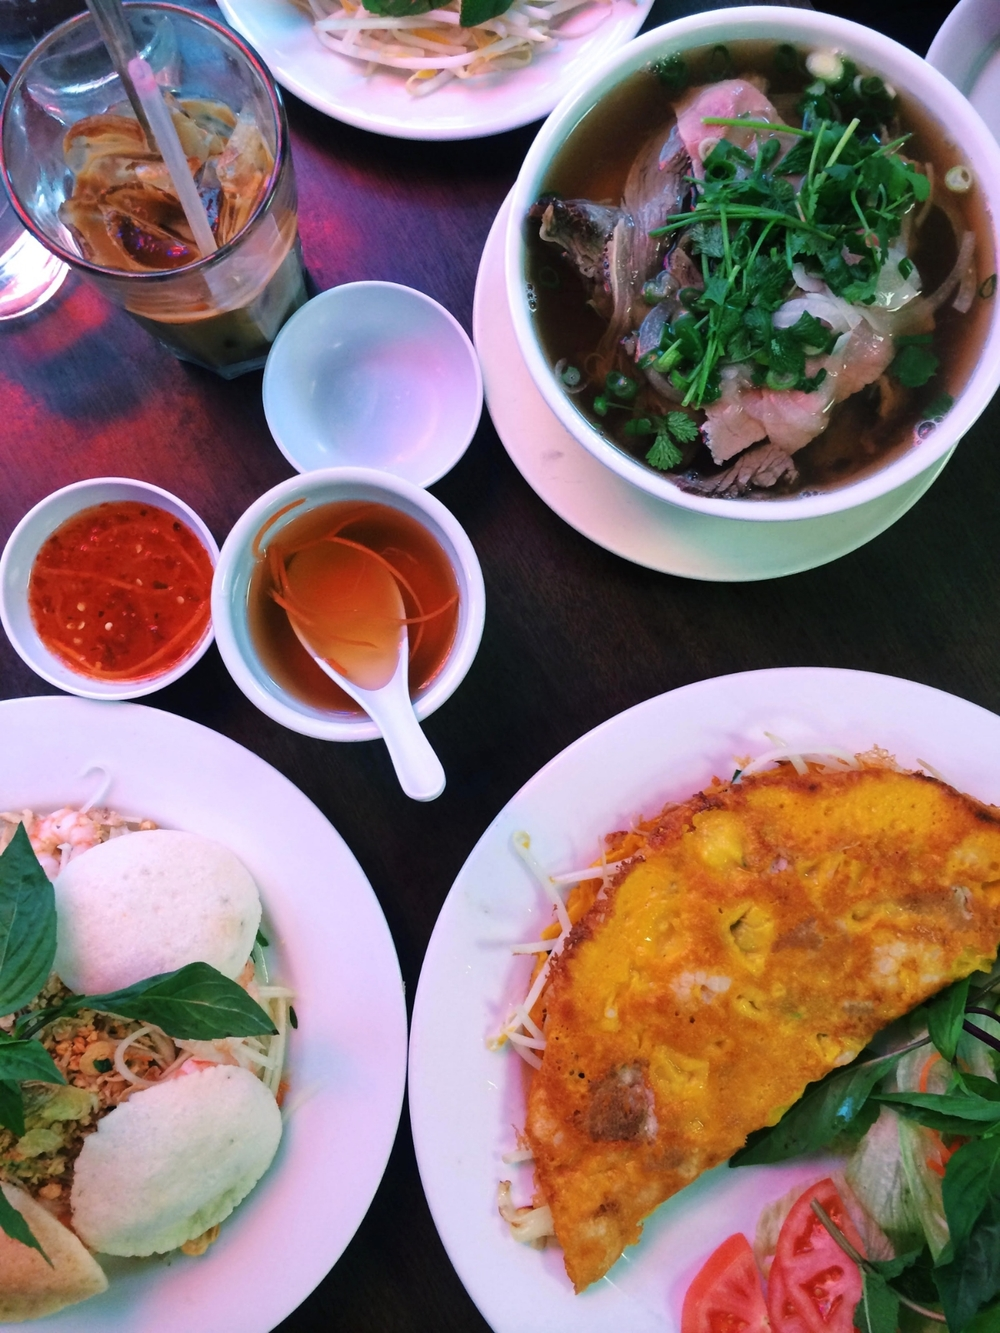 From Top, Clockwise: Pho with Eye Round, Bunh Xeo, and Shrimp and Papaya Salad